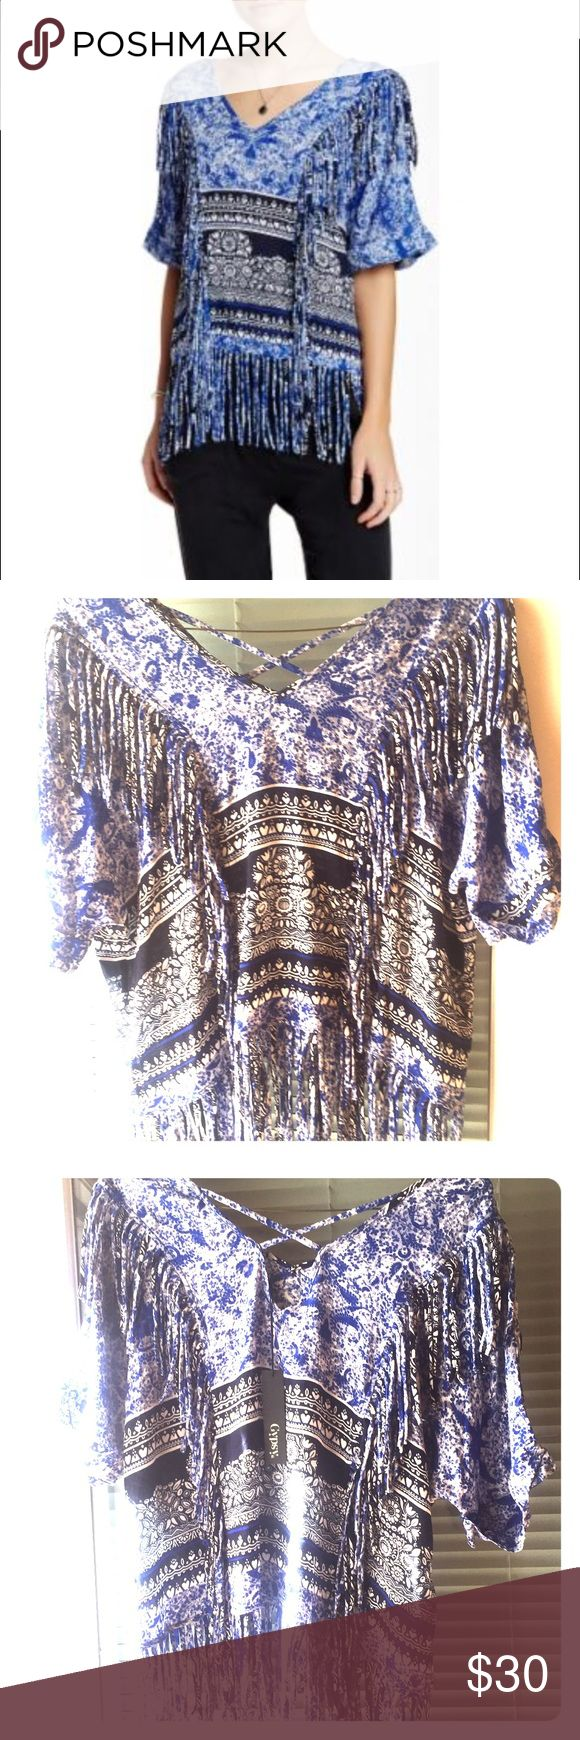 Gypsy 05 Printed Voile Fringe Blouse NWT V-neck Gypsy 05 fringe blouse with criss-cross back straps and blue print   NWT size medium   100% rayon   fits true to size! Gypsy 05 Tops